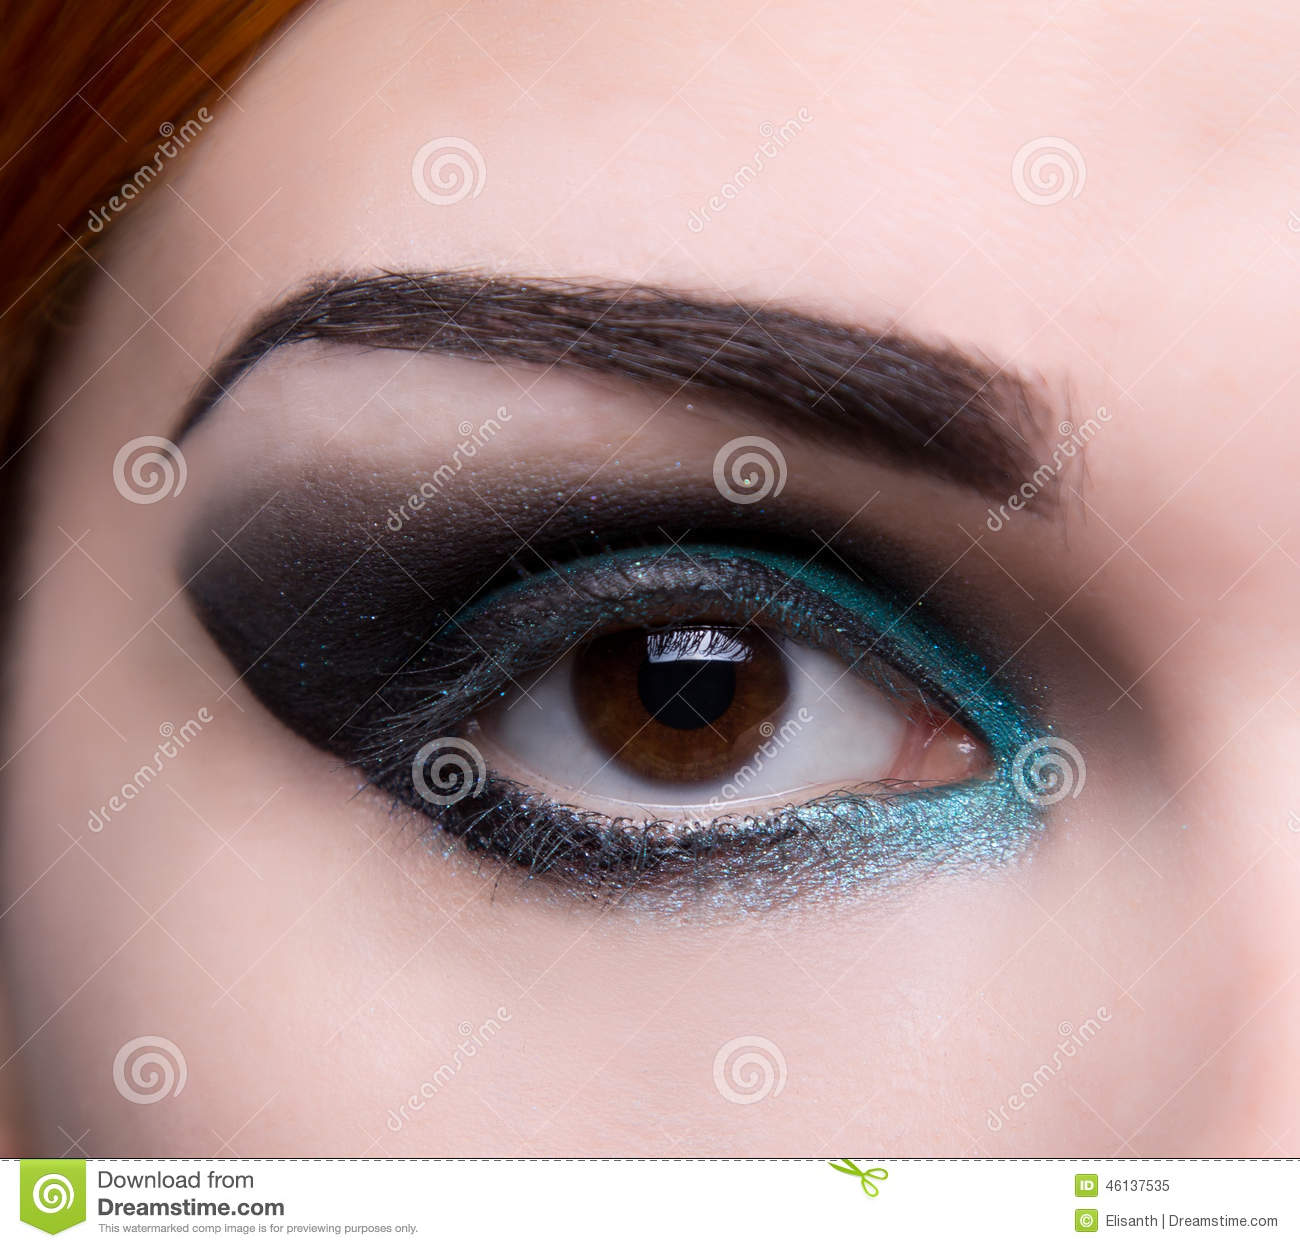 13 737 Artistic Eye Photos Free Royalty Free Stock Photos From Dreamstime